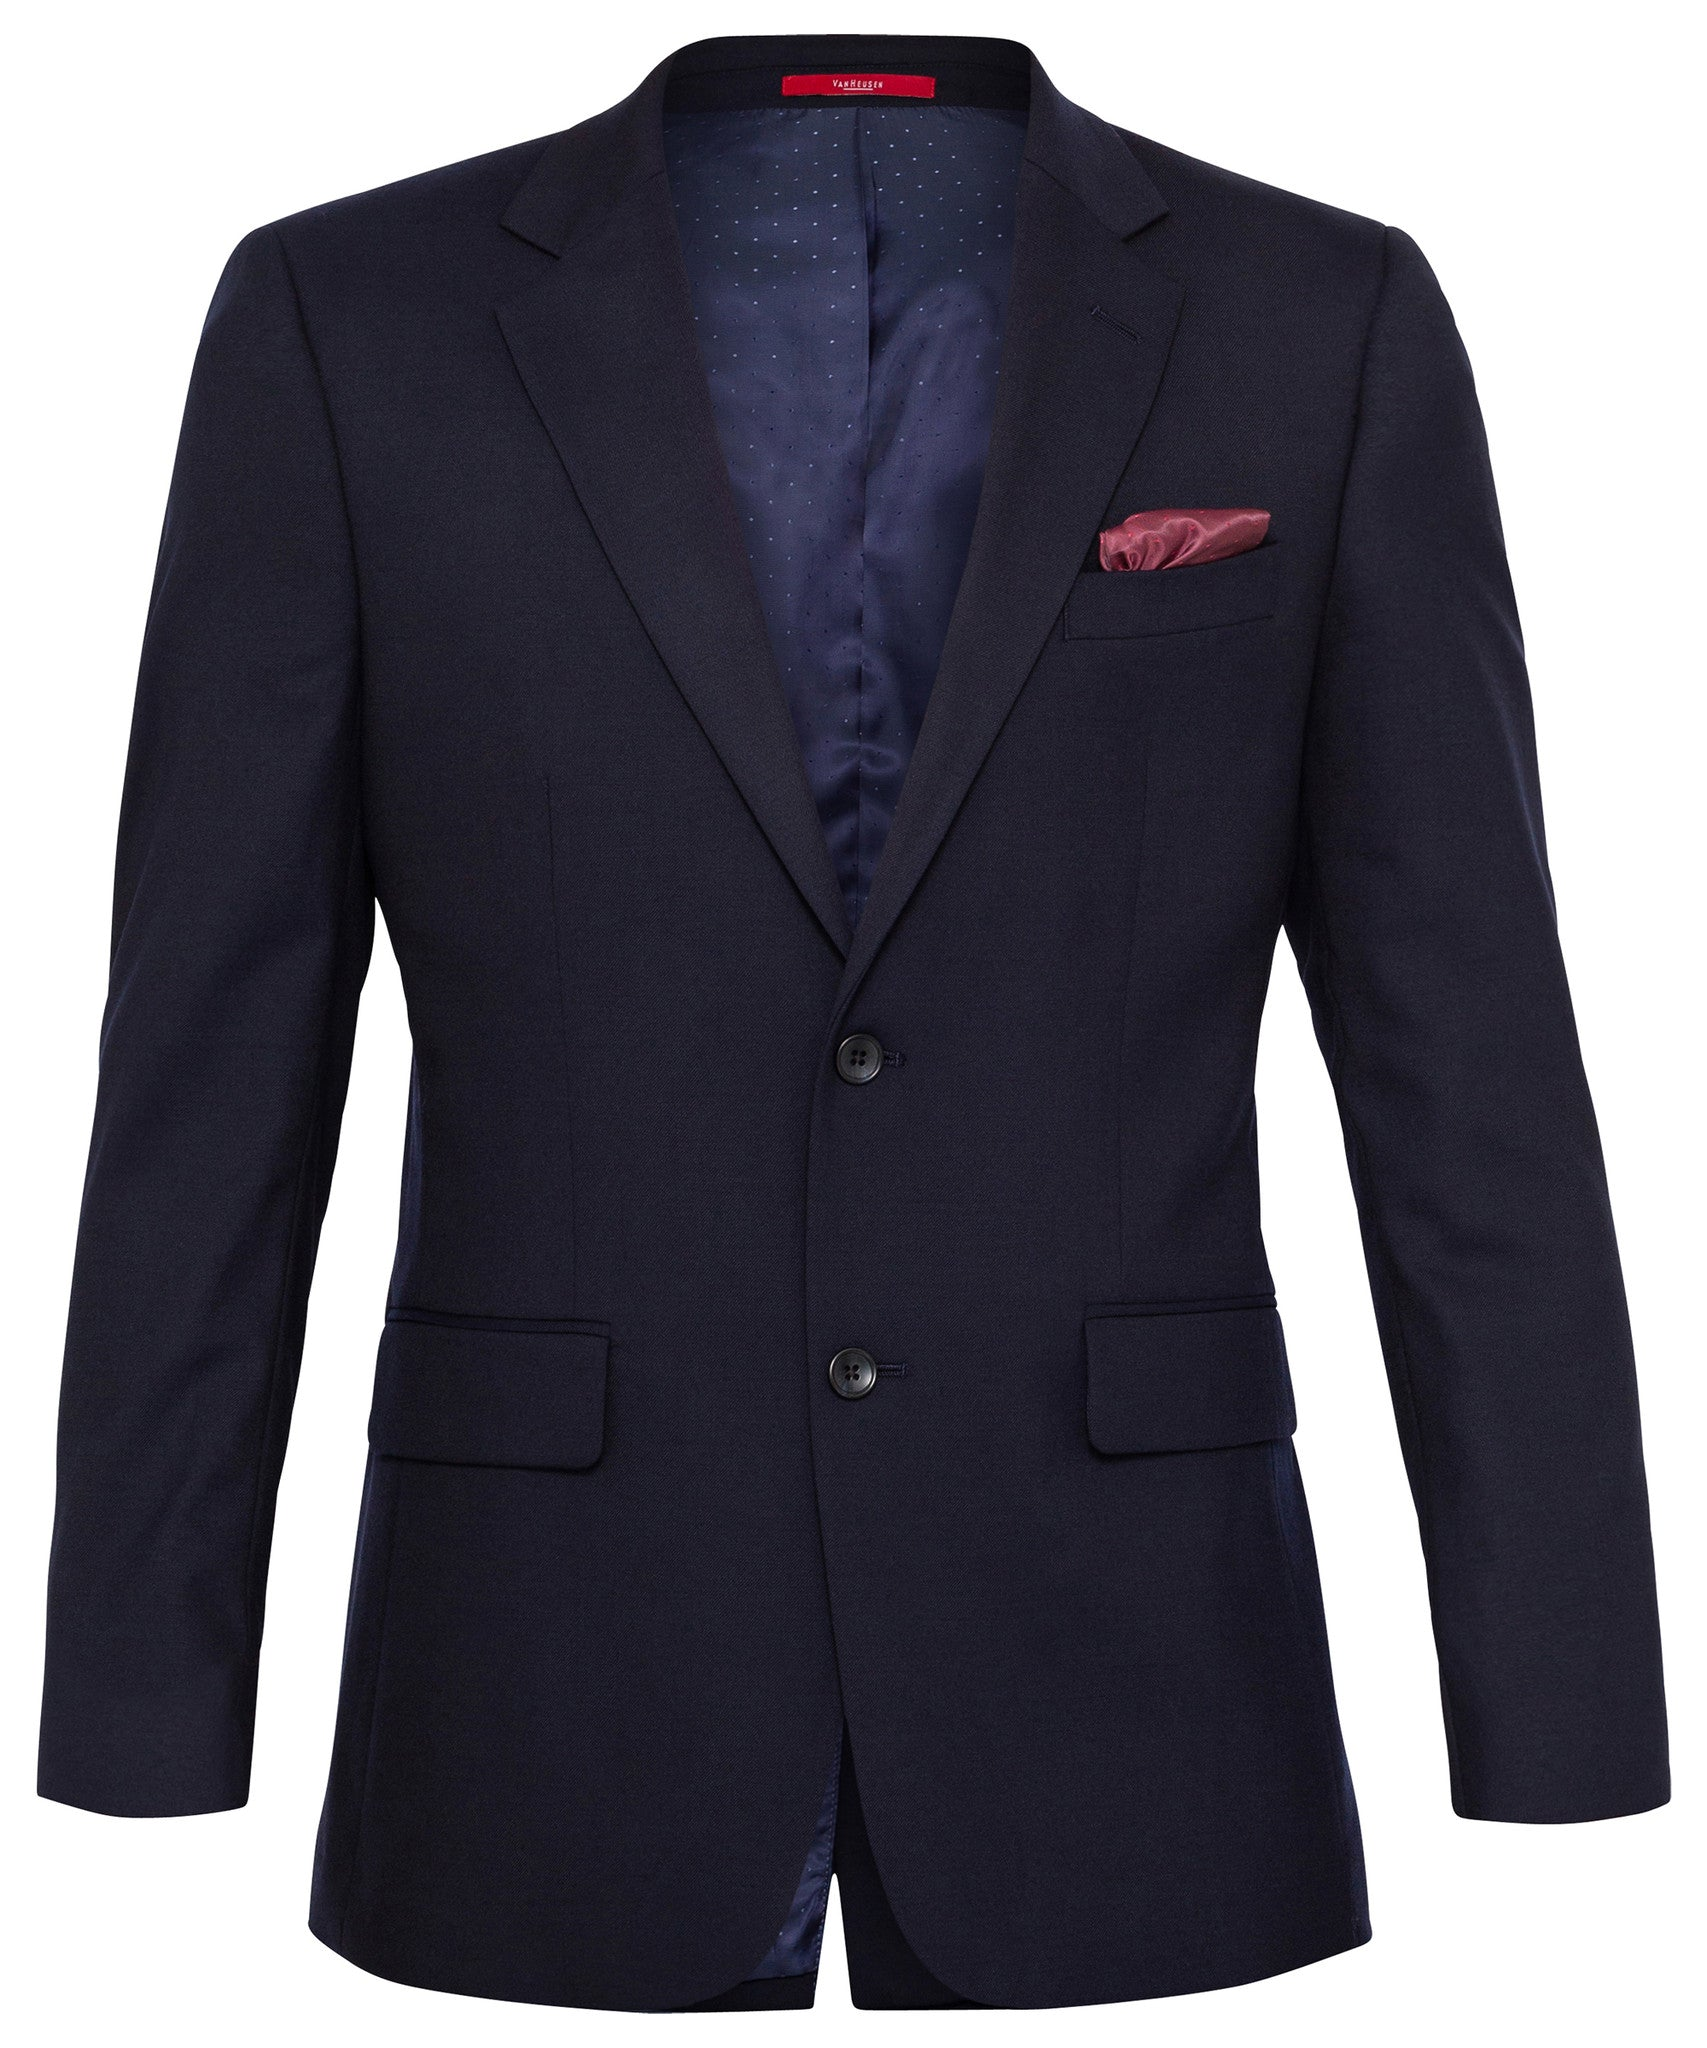 Van Heusen Wool Blend Navy Twill Suit Jacket With Move Technology